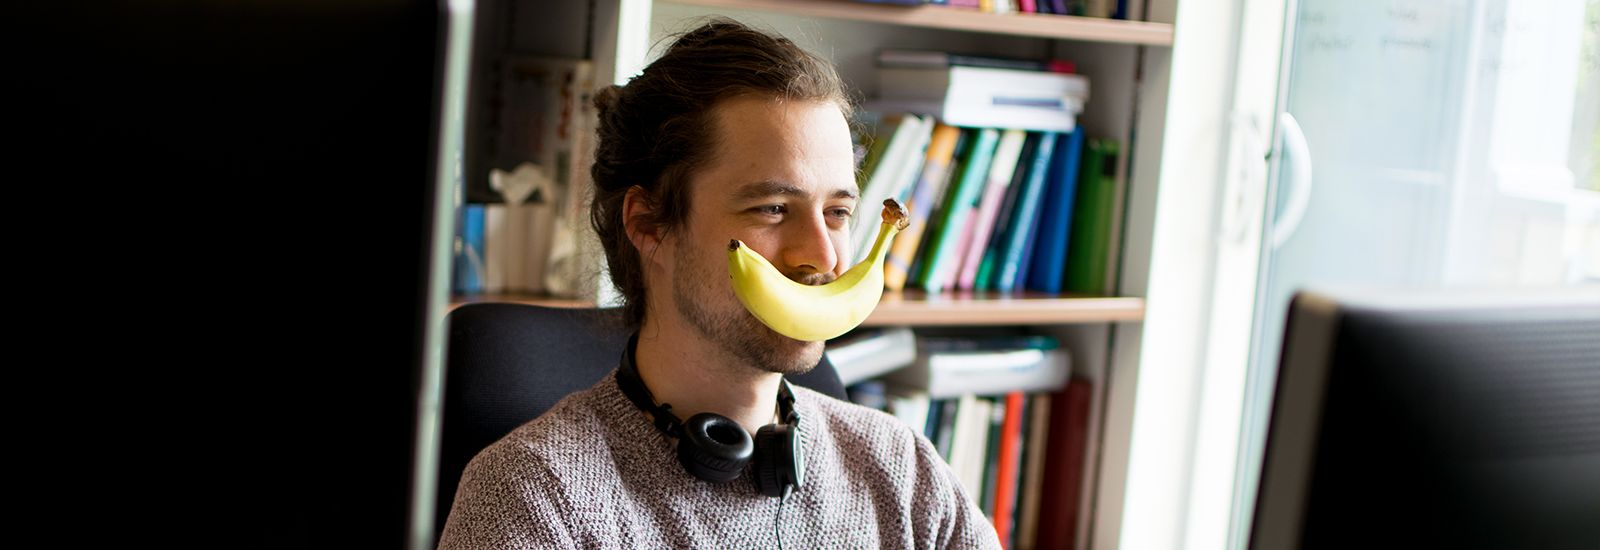 Student with banana on their face working on a computer